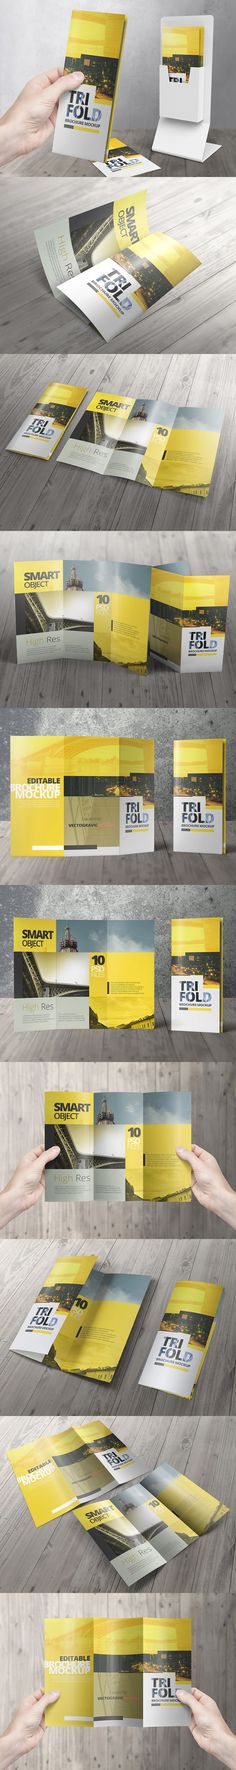 High resolution Tri Fold Mockups to makes easier in showcasing your print design projects, fast and easy with Smart Object features that allows you to drag and drop your design template into the mockups.